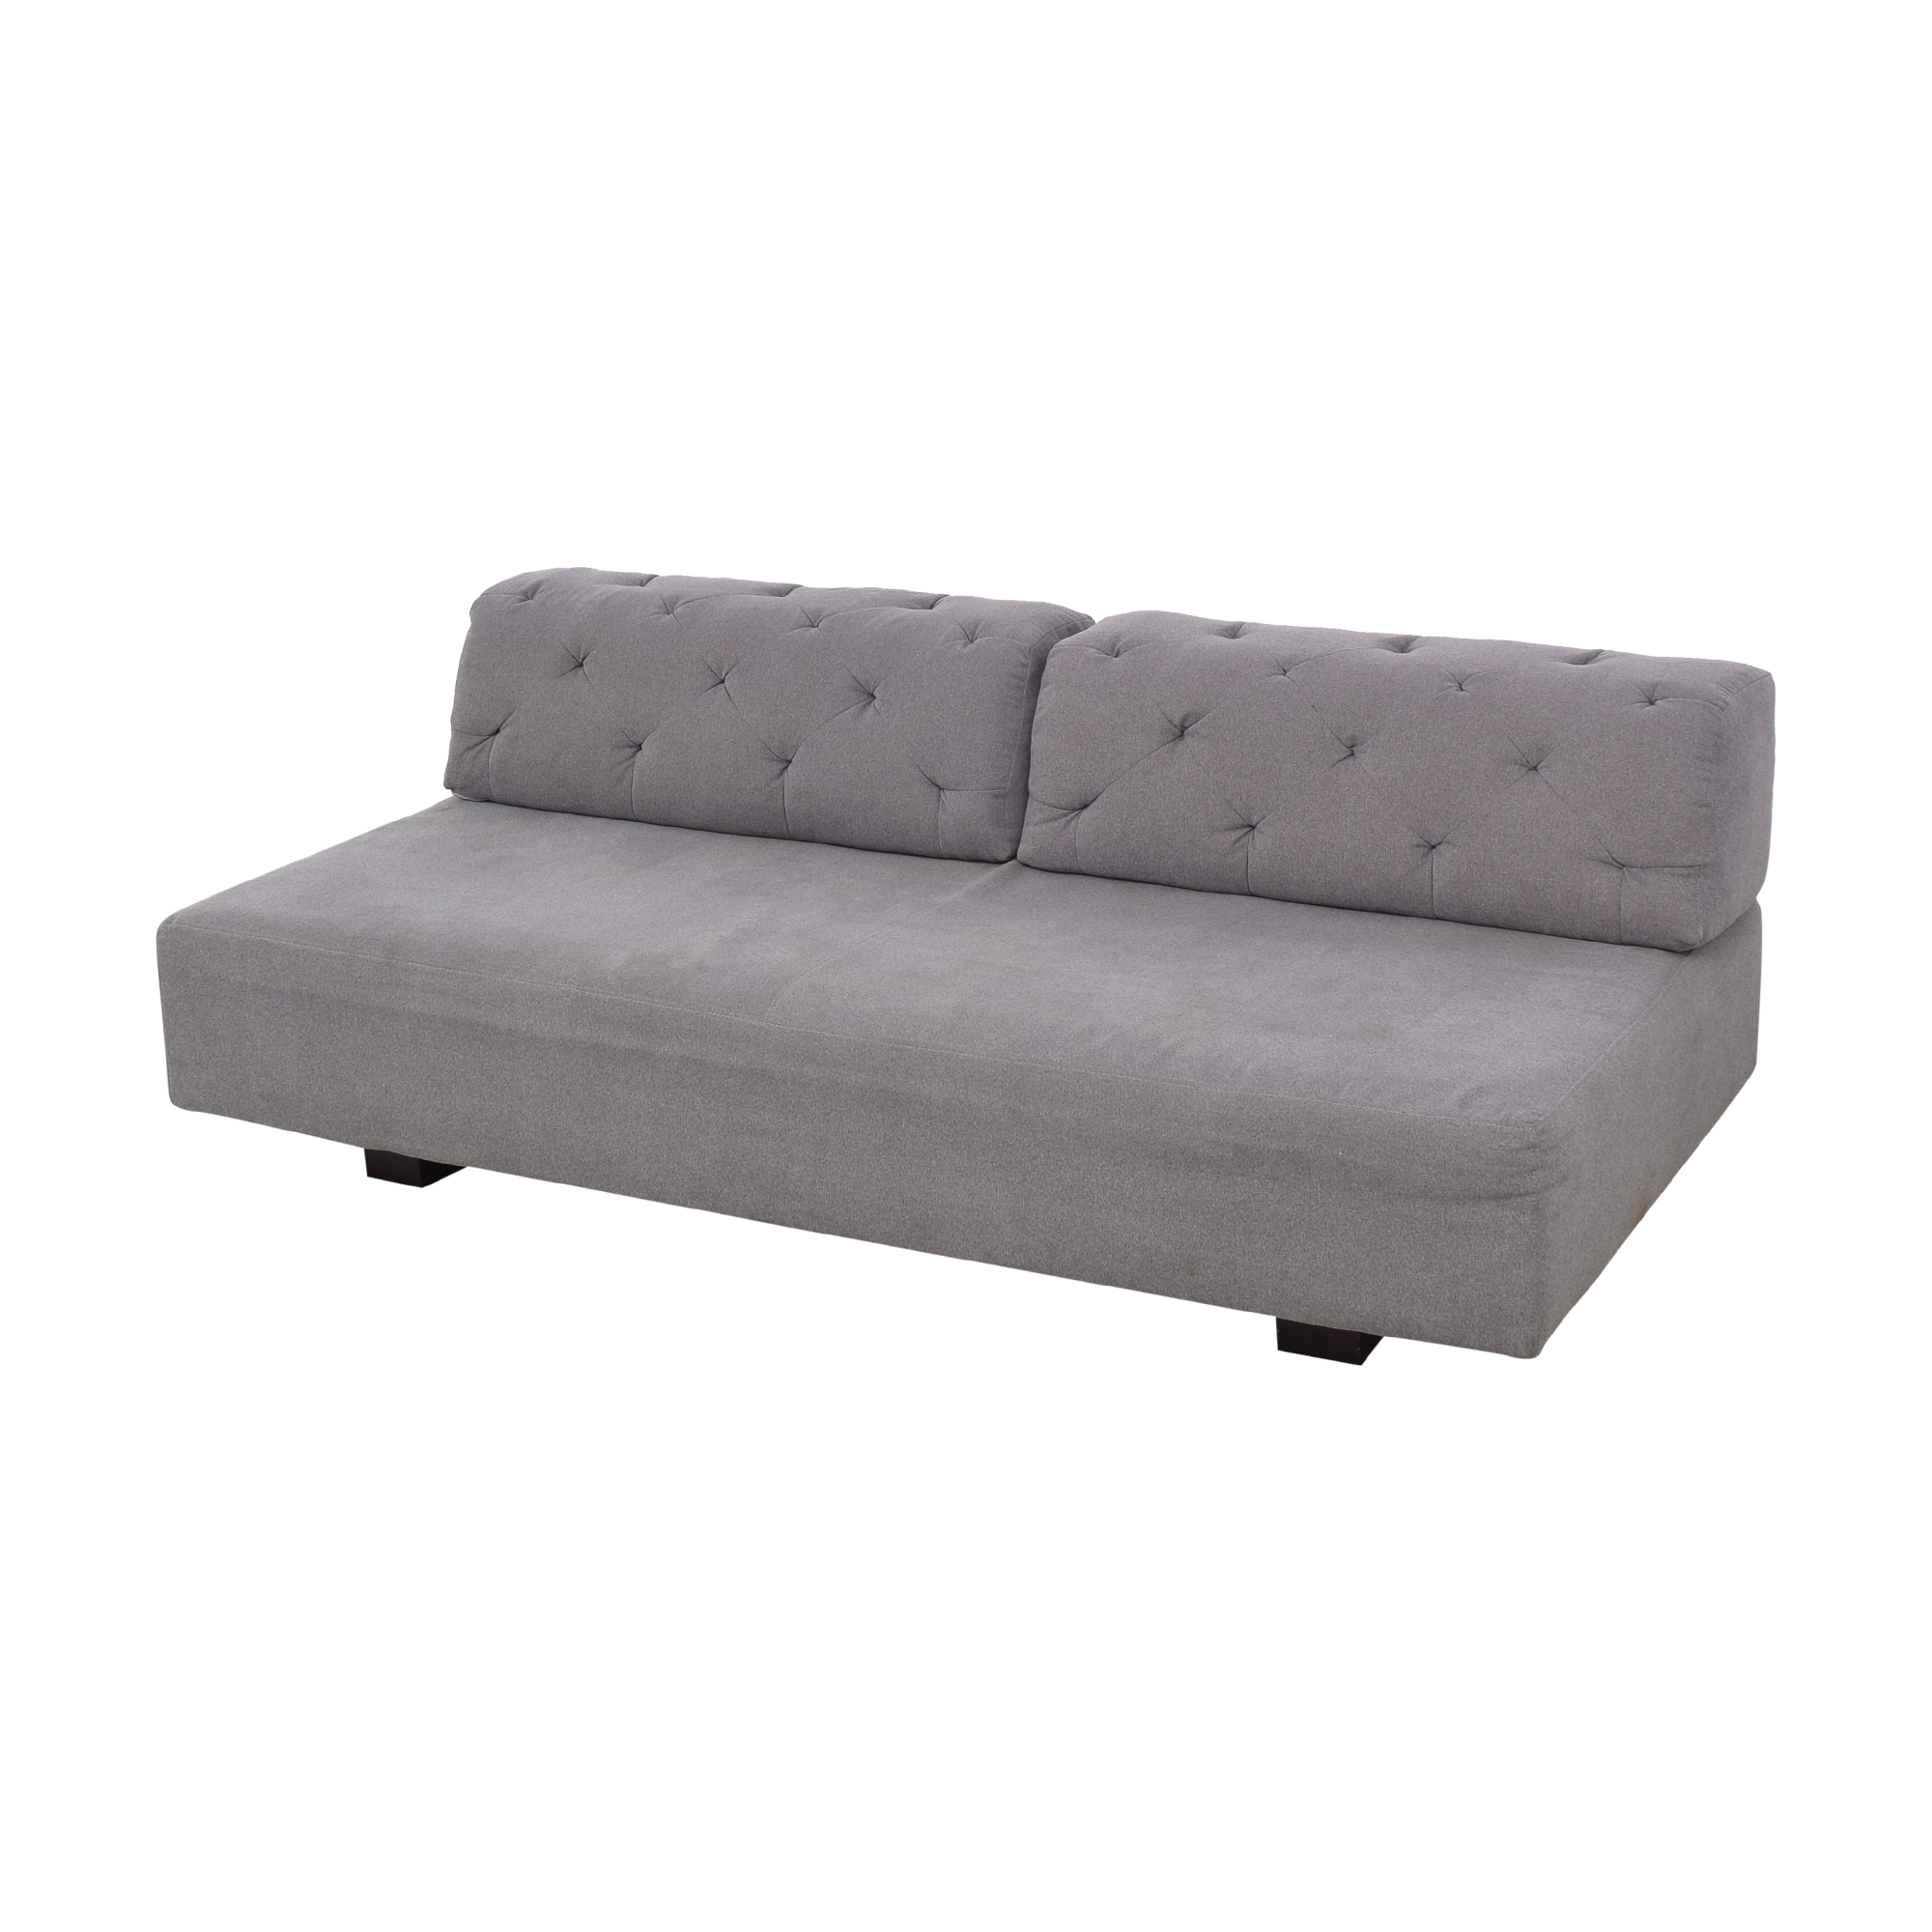 West Elm West Elm Tillary Sofa with Tufted Back Cushions dimensions